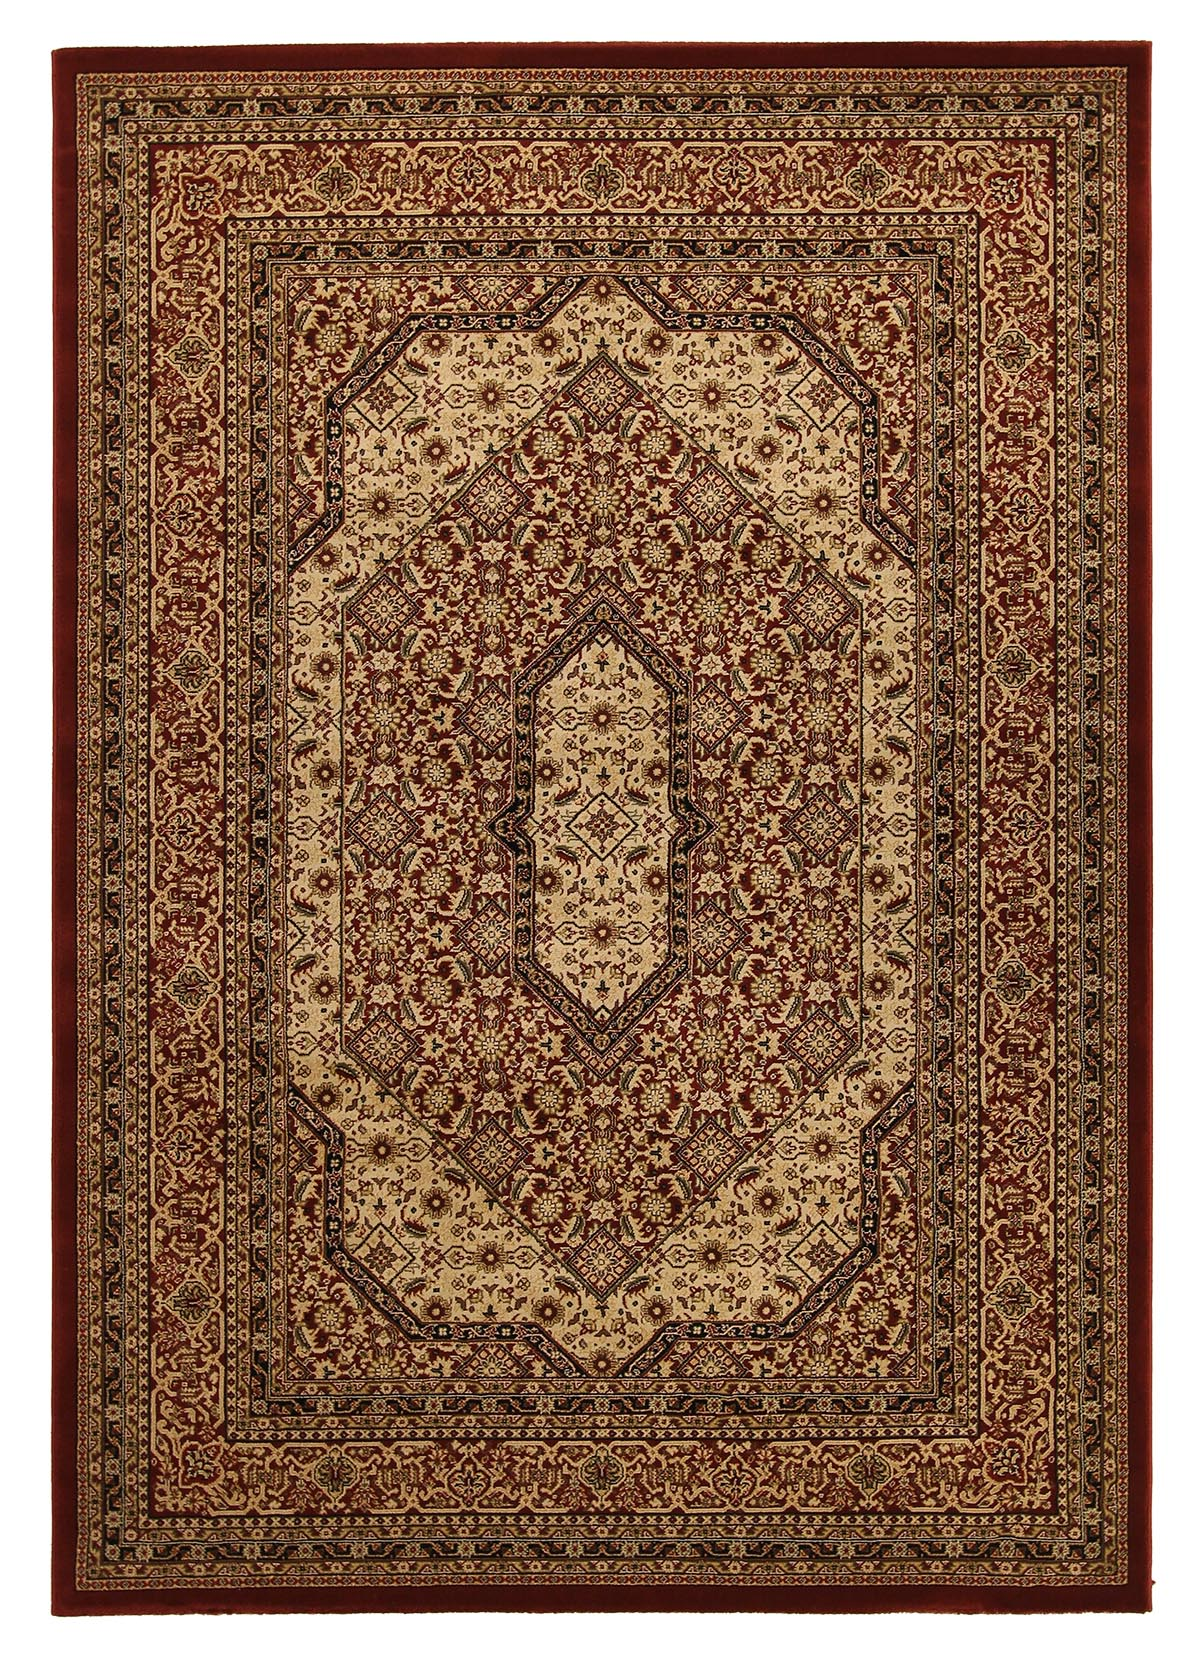 Buy rugs new york 961 red traditional rug rugspot for Cheap persian rugs nyc